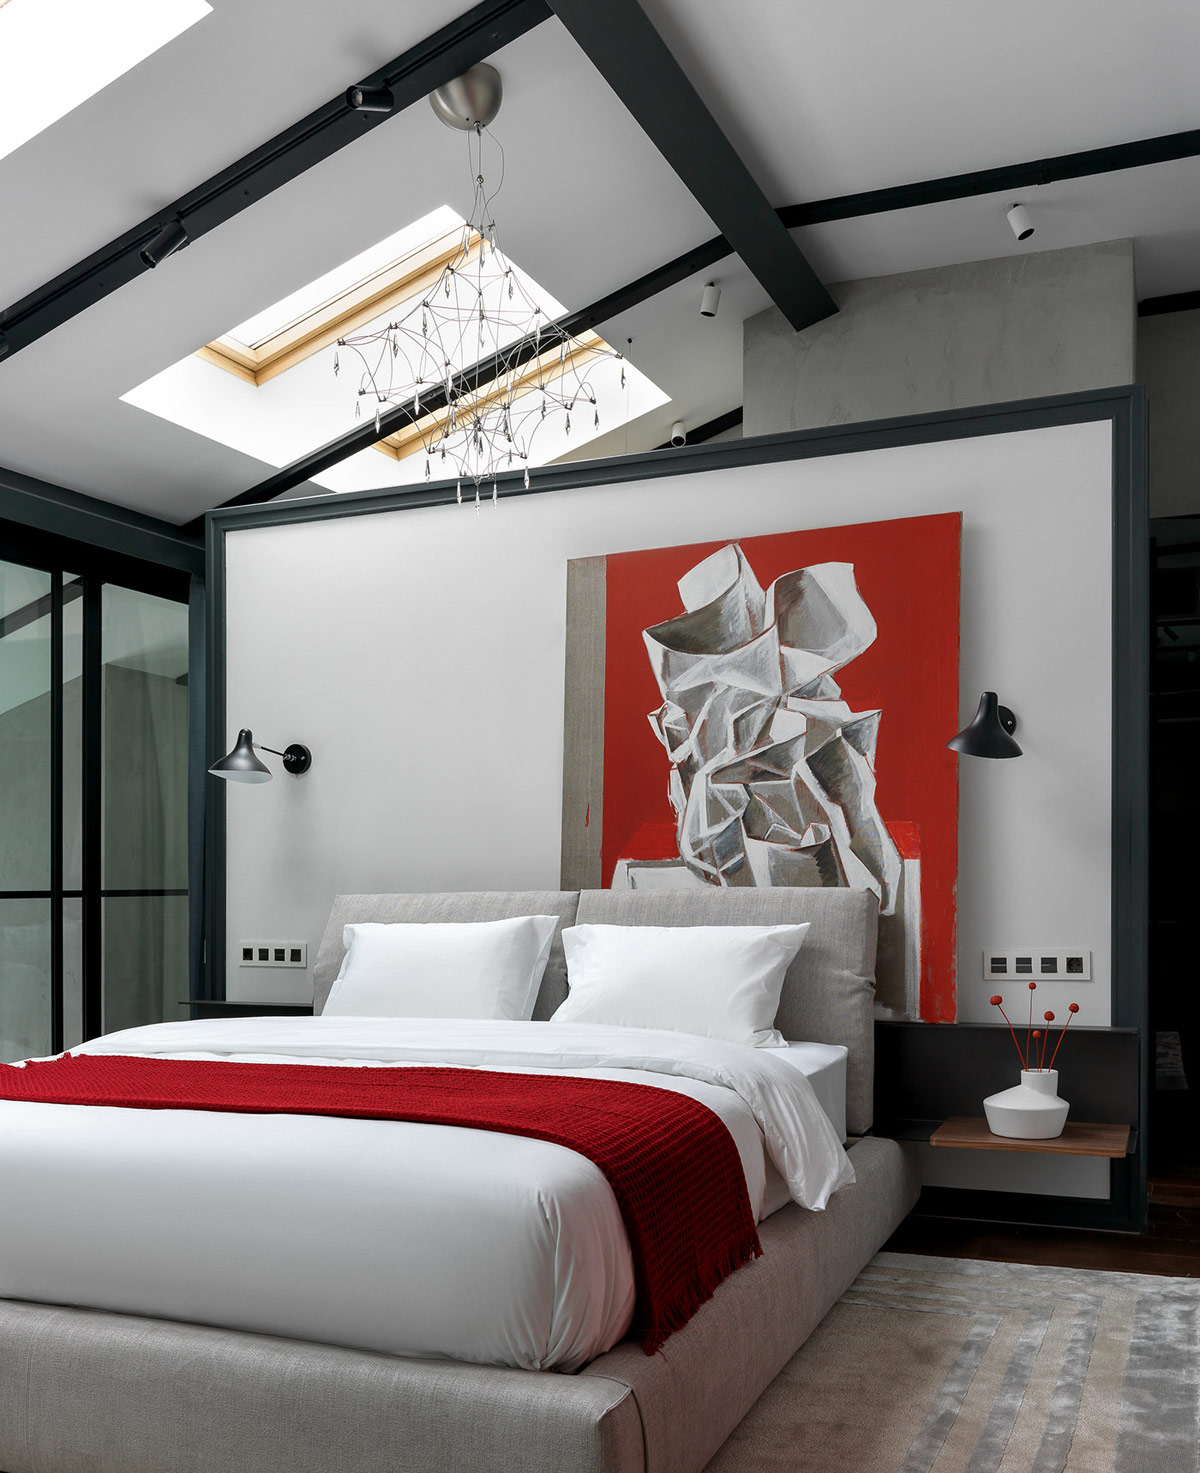 Bedroom with Artistic Red Accents